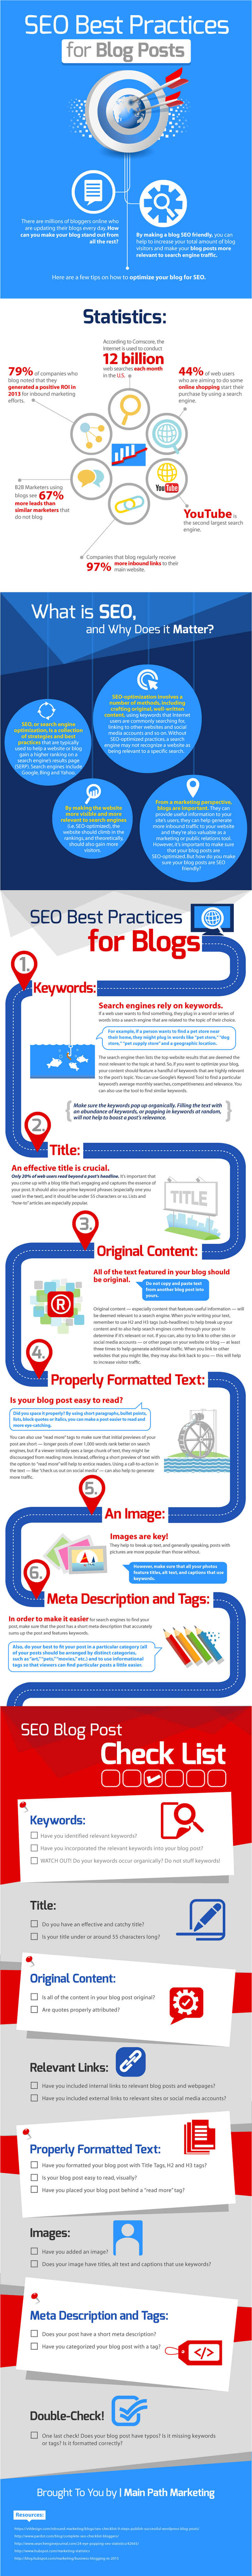 SEO Best Practices for Blog Posts Infographic